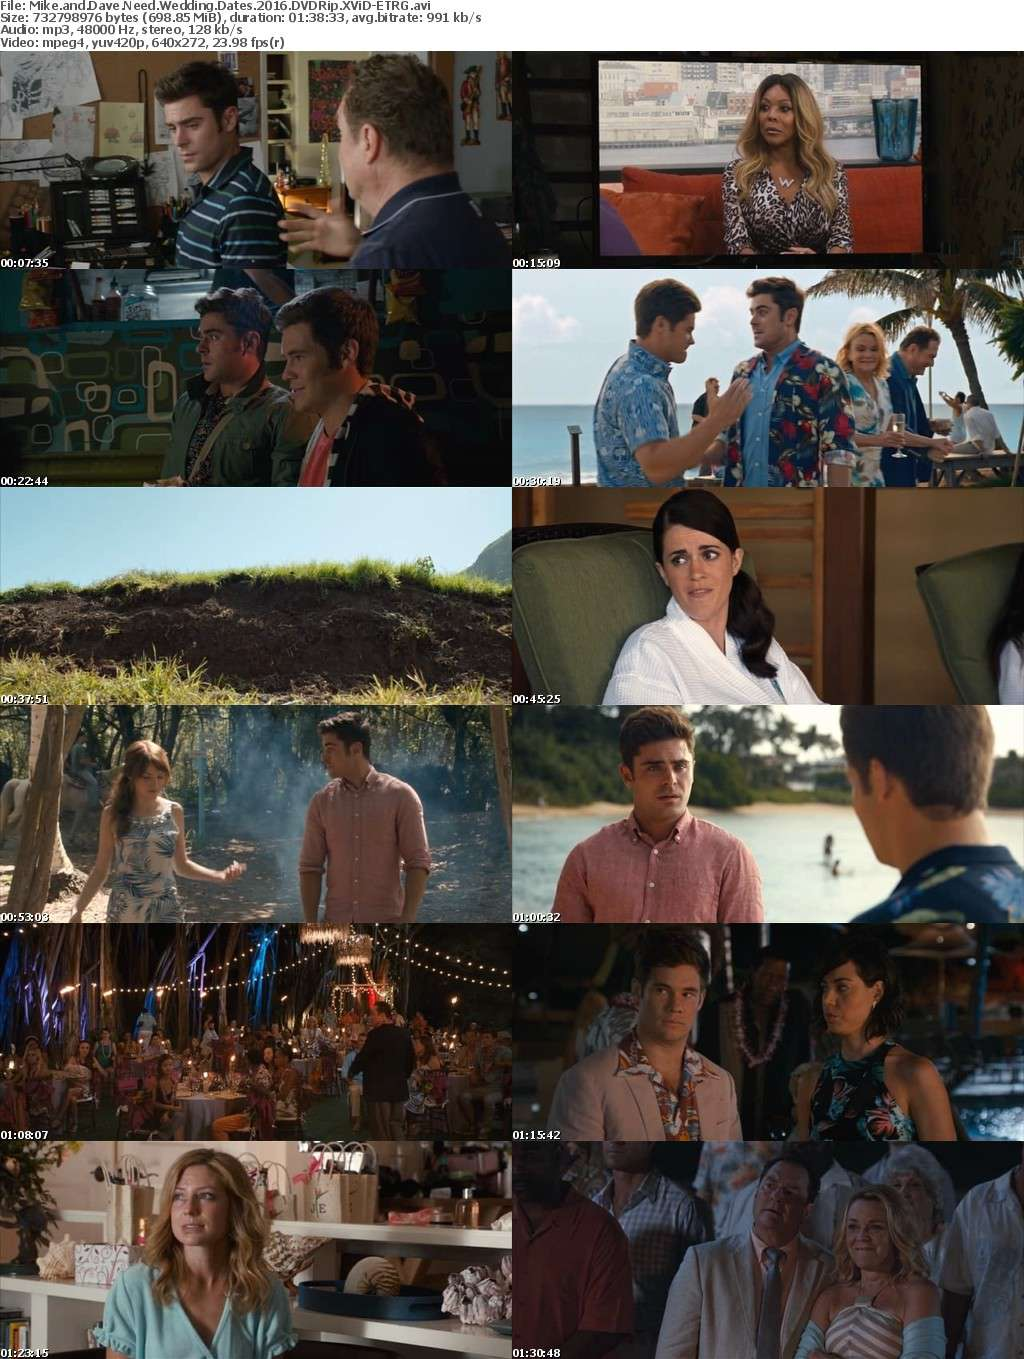 Mike And Dave Need Wedding Dates 2016 DVDRip XViD-ETRG